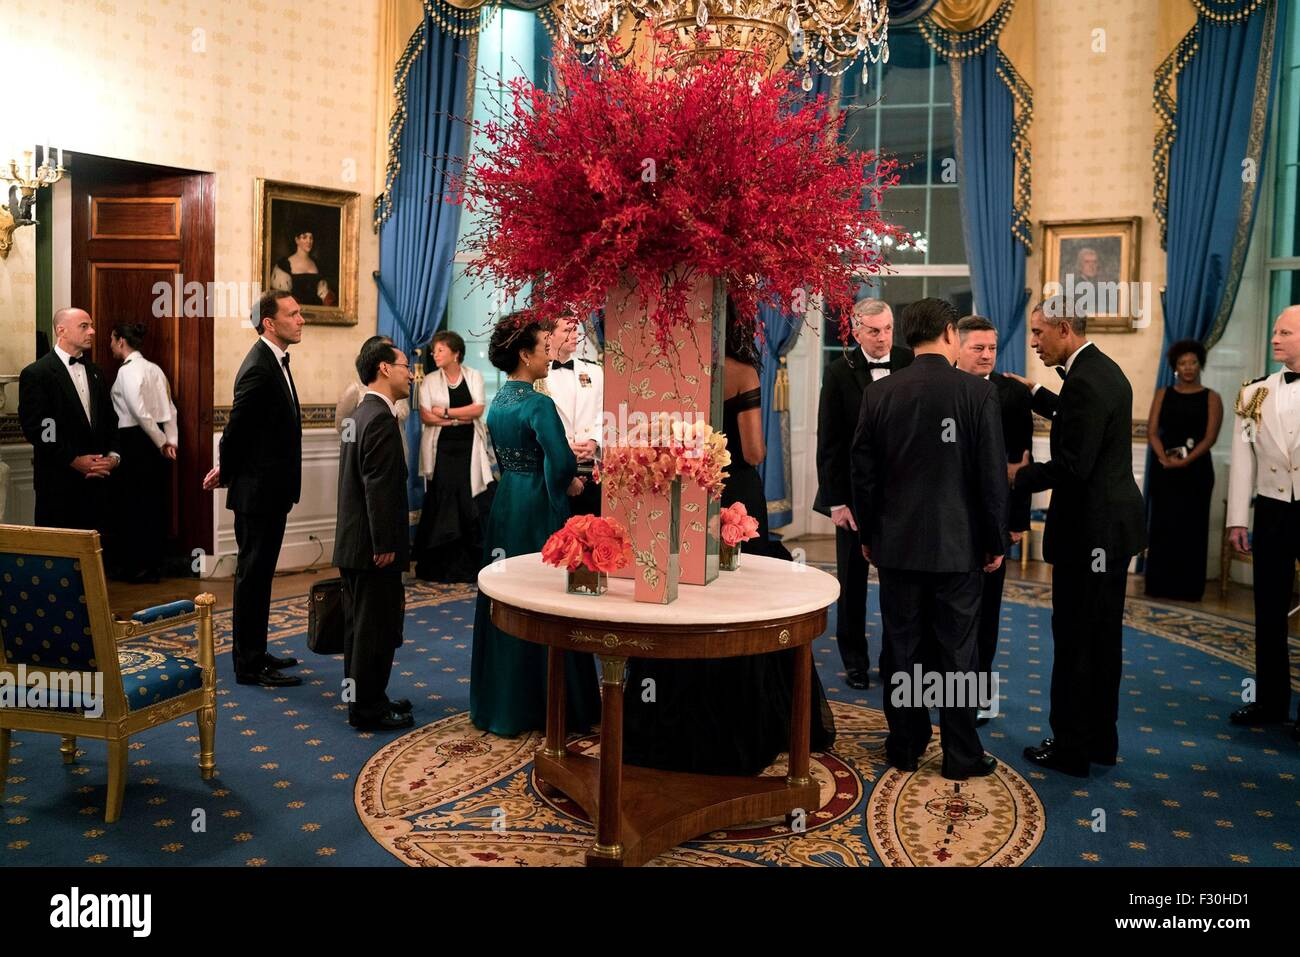 Washington DC, US. 25th Sep, 2015. U.S. President Barack Obama and Chinese President Xi Jinping greet guests in - Stock Image